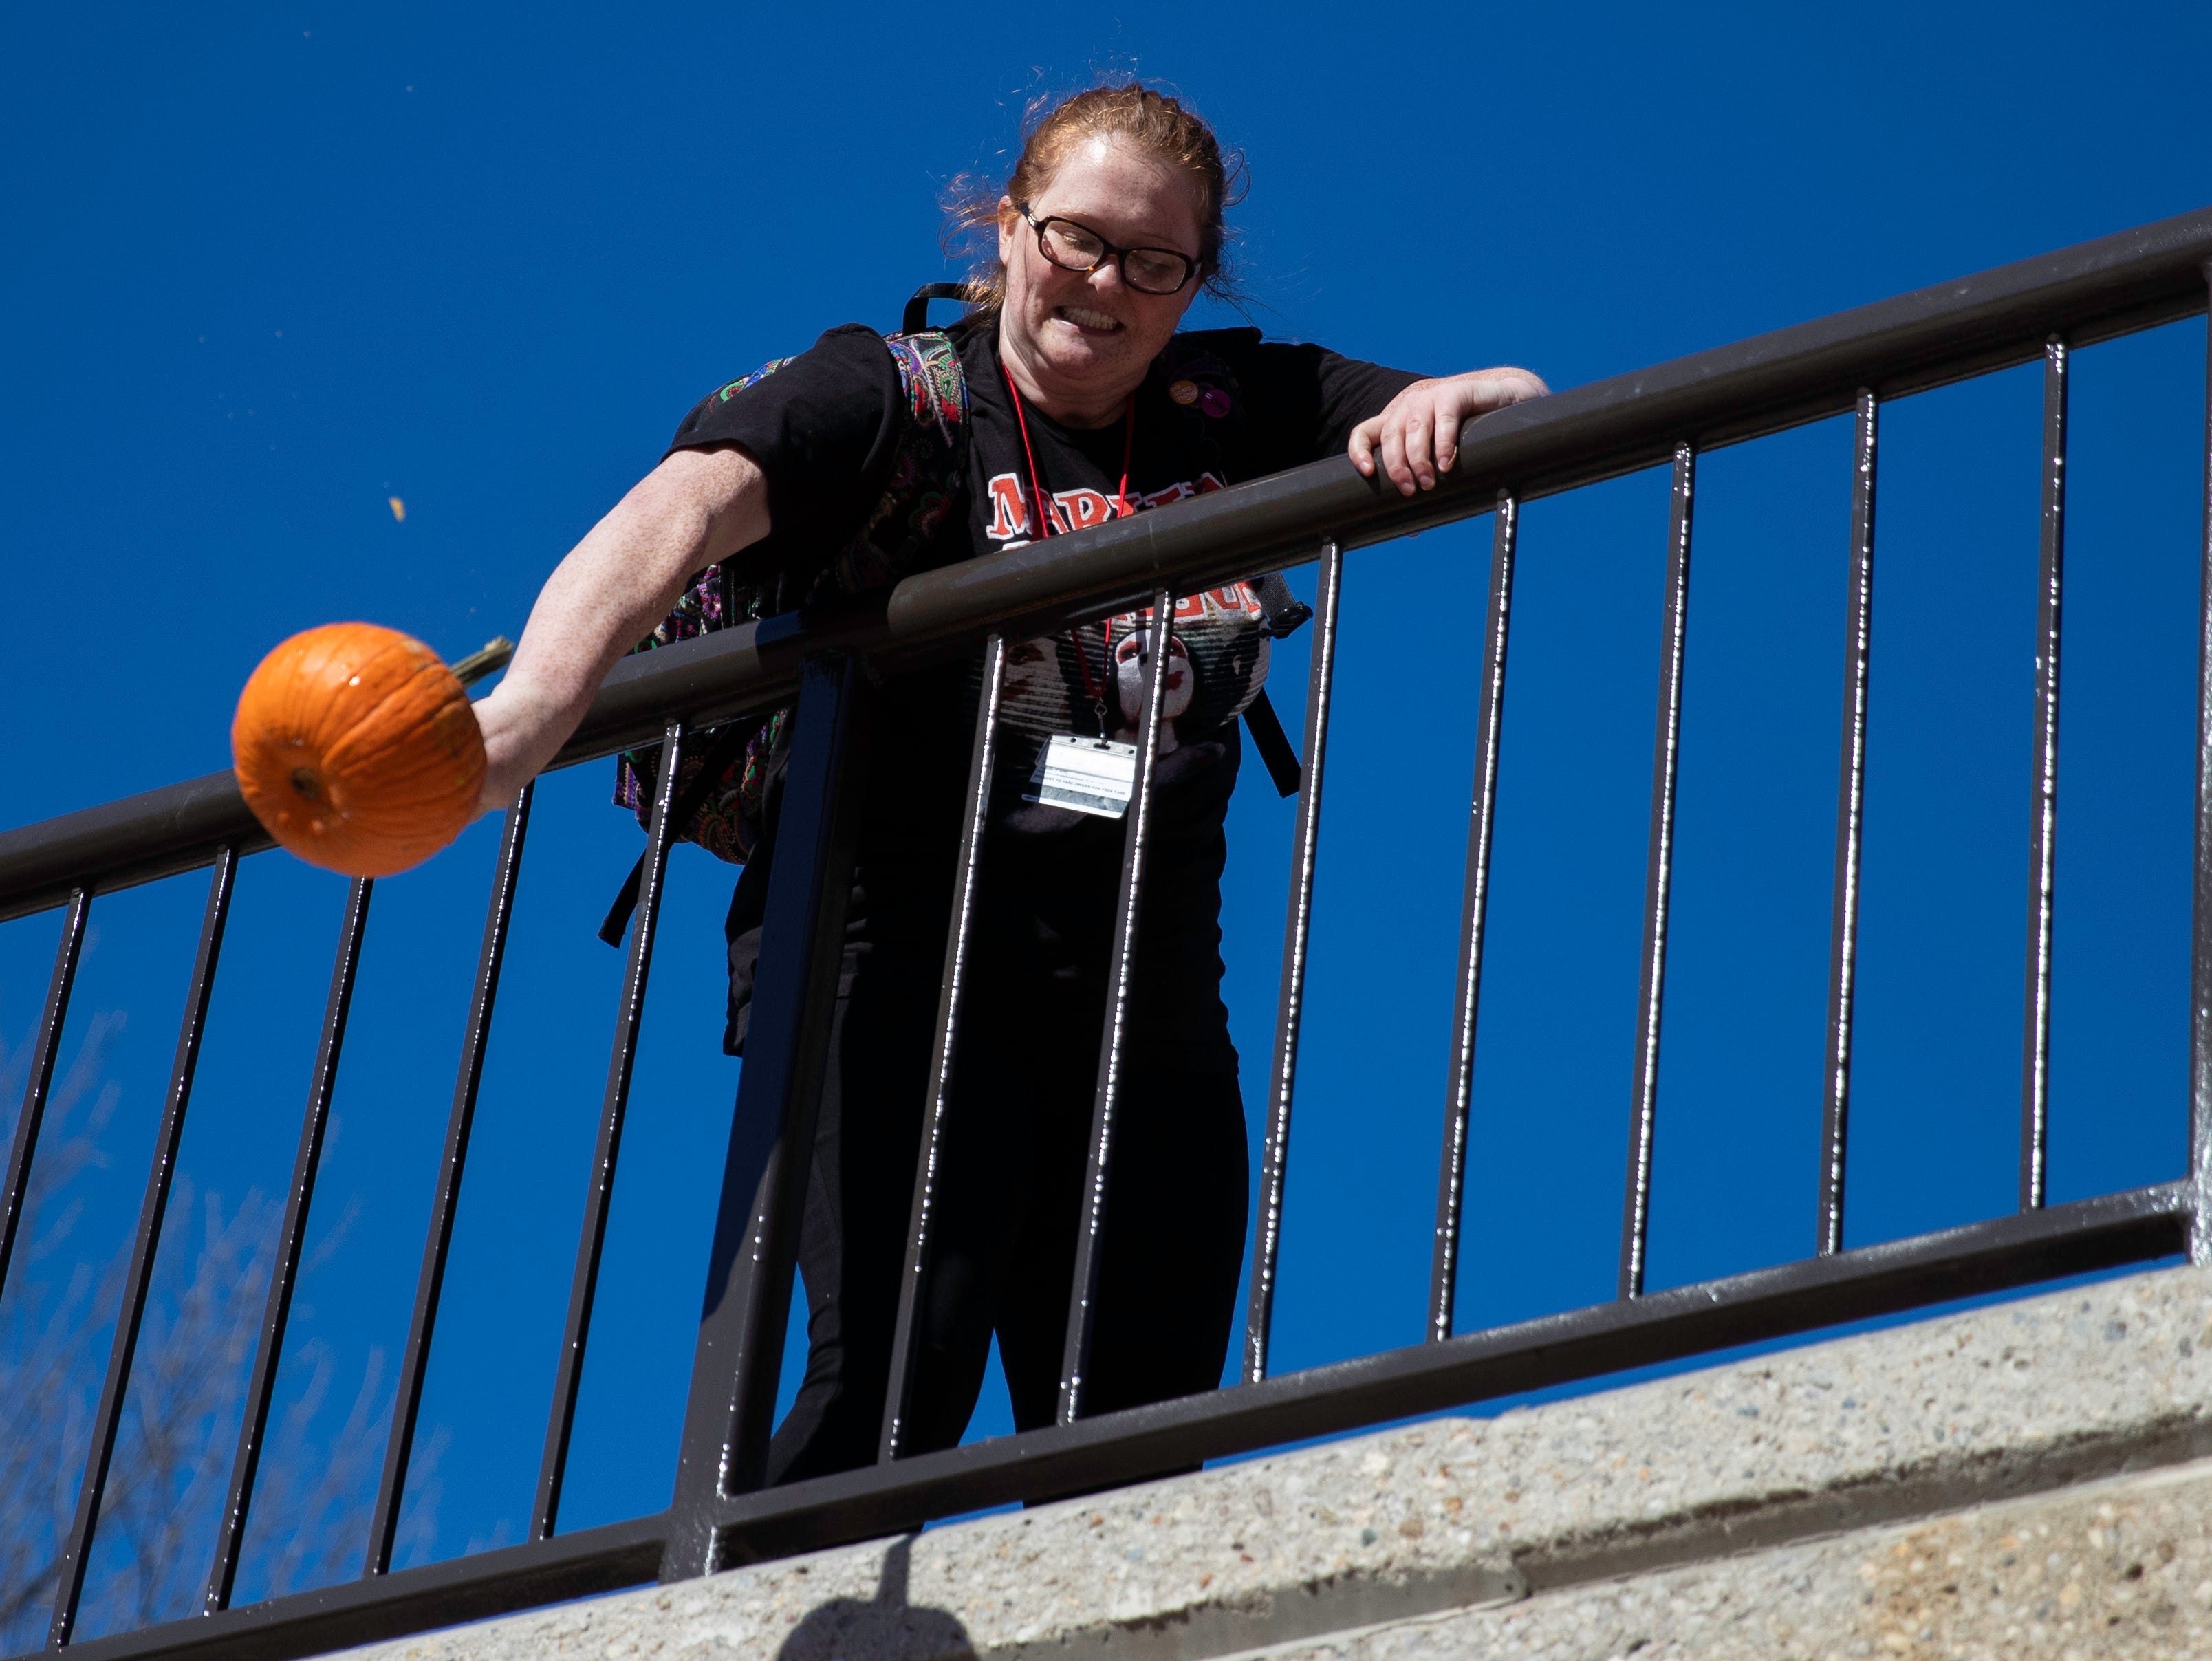 Students and staff members hurled pumpkins off the SAC Ramp, Tuesday, Nov. 6, 2018 in Louisville Ky. The annual Pumpkin Smash in collaboration with the Office of Health Promotion, benefits UofLÕs Community Composting Project with all smashed pumpkins going into the compost to feed various community gardens, on and off UofL's campus.